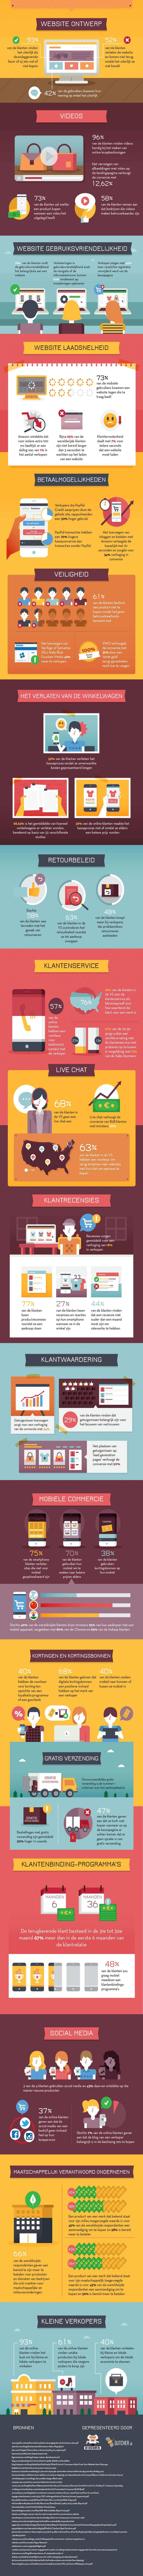 Infographic webshops